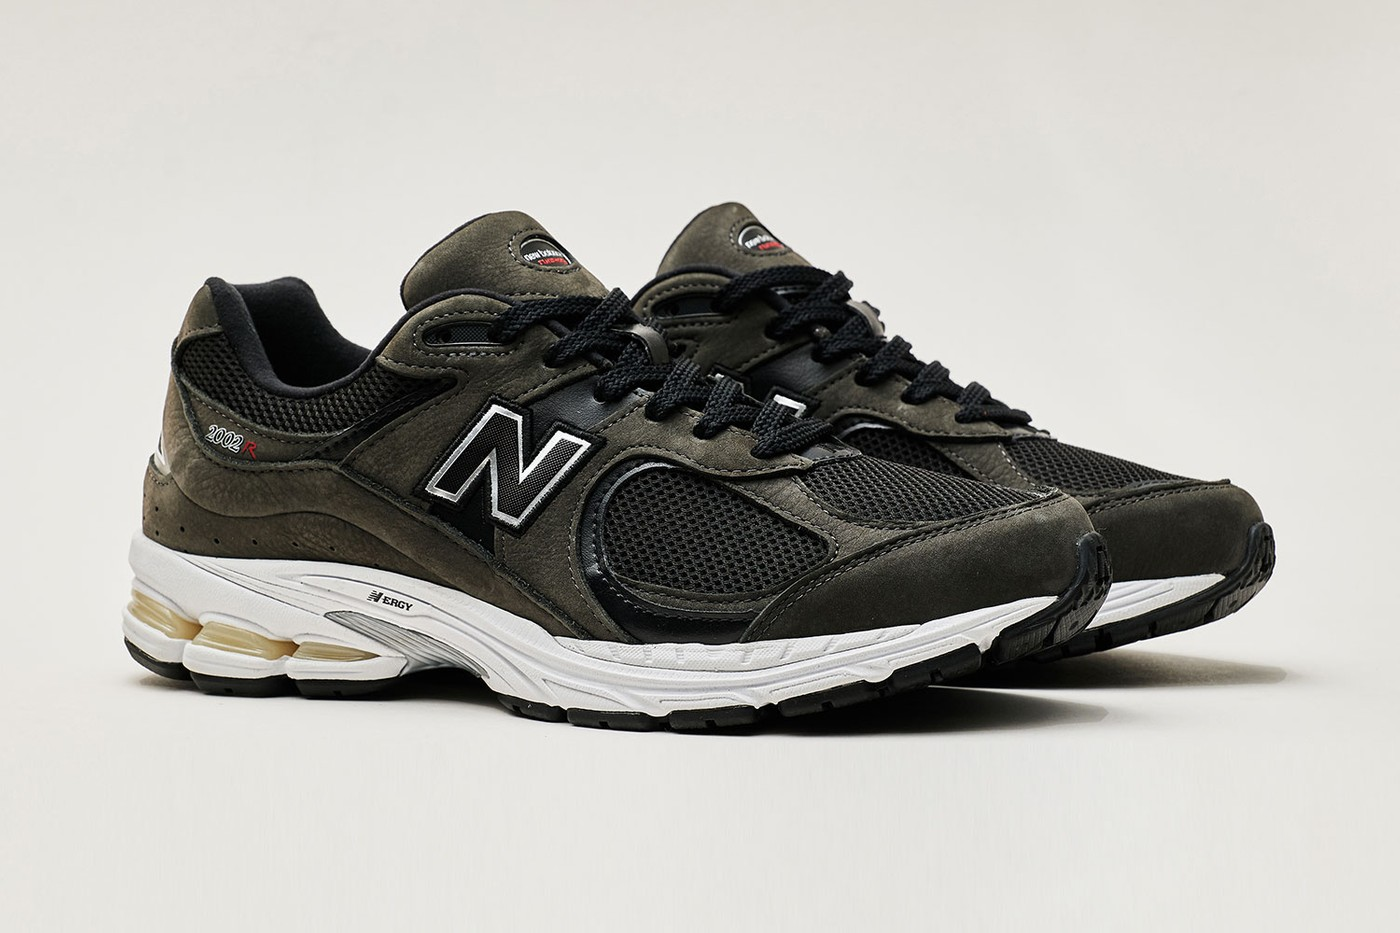 New-Balance-2002R-Grey-And-Black-Full-View